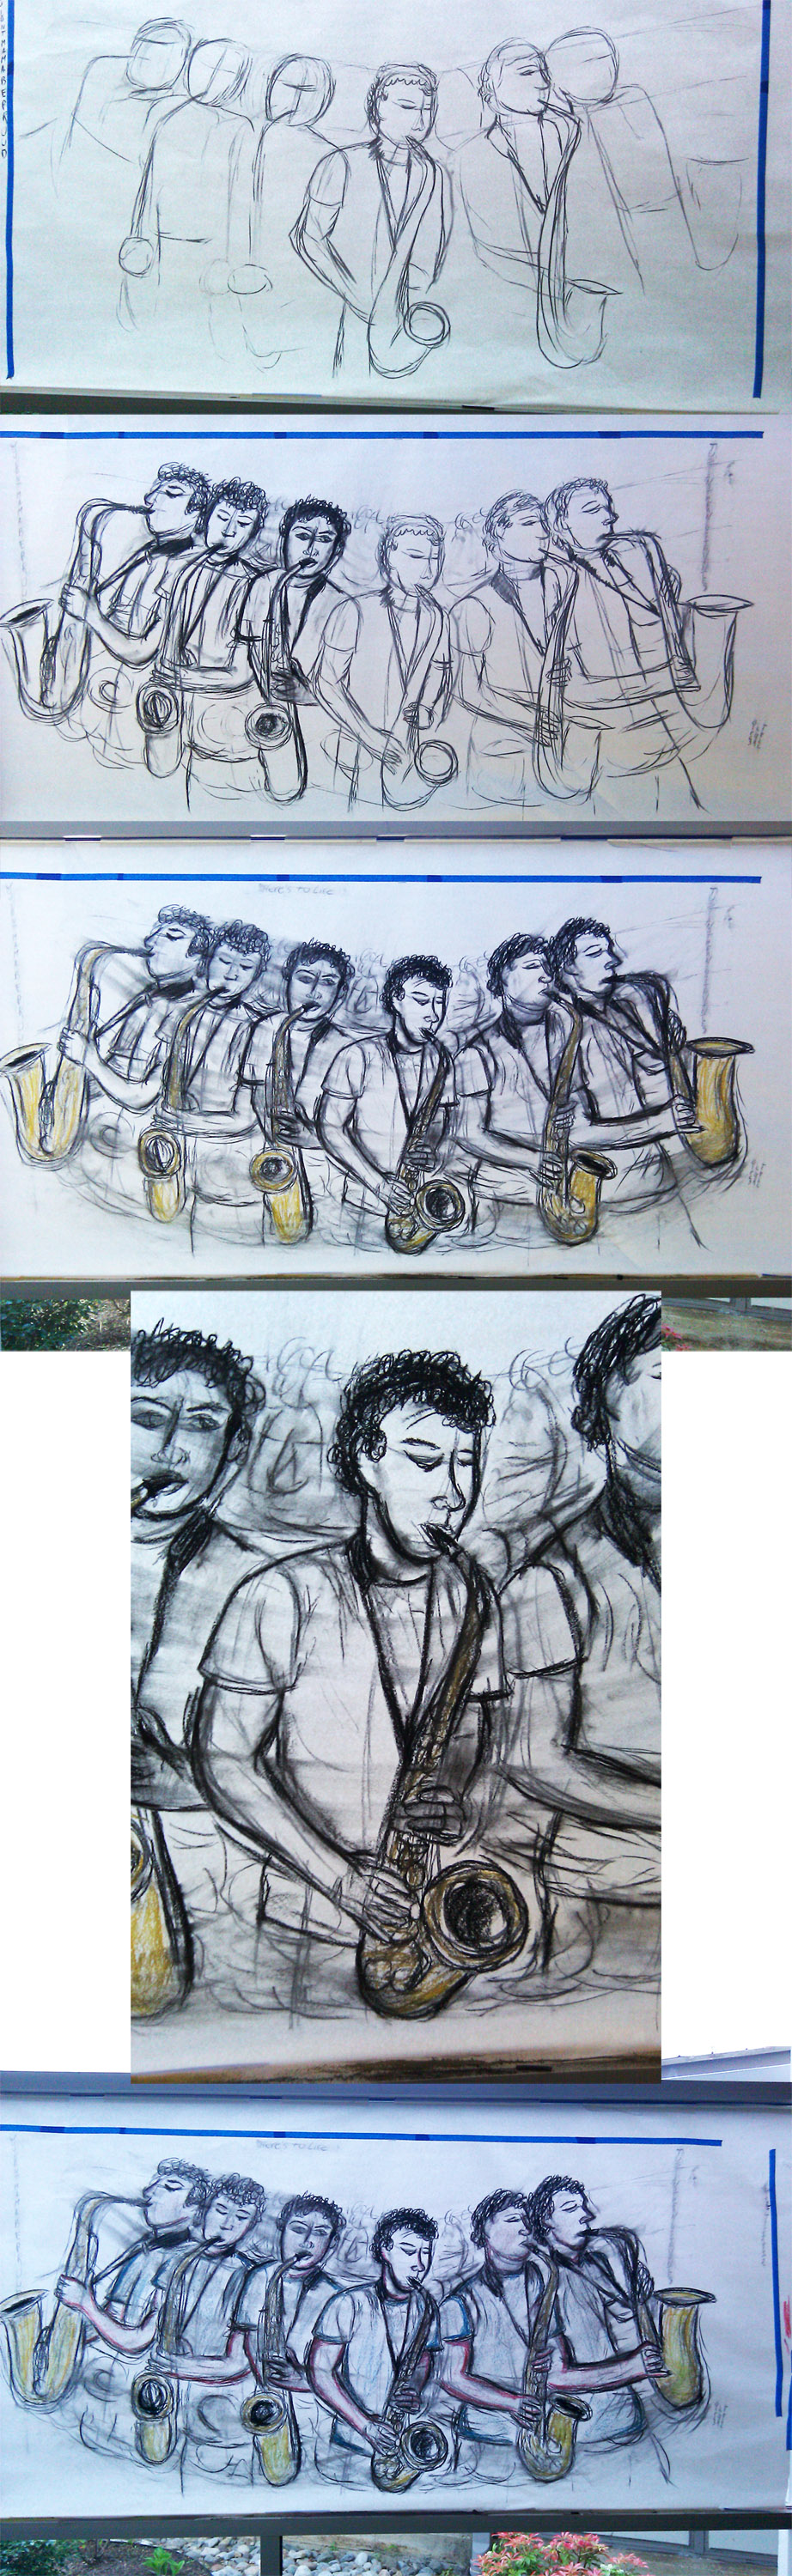 John on the Sax step by step